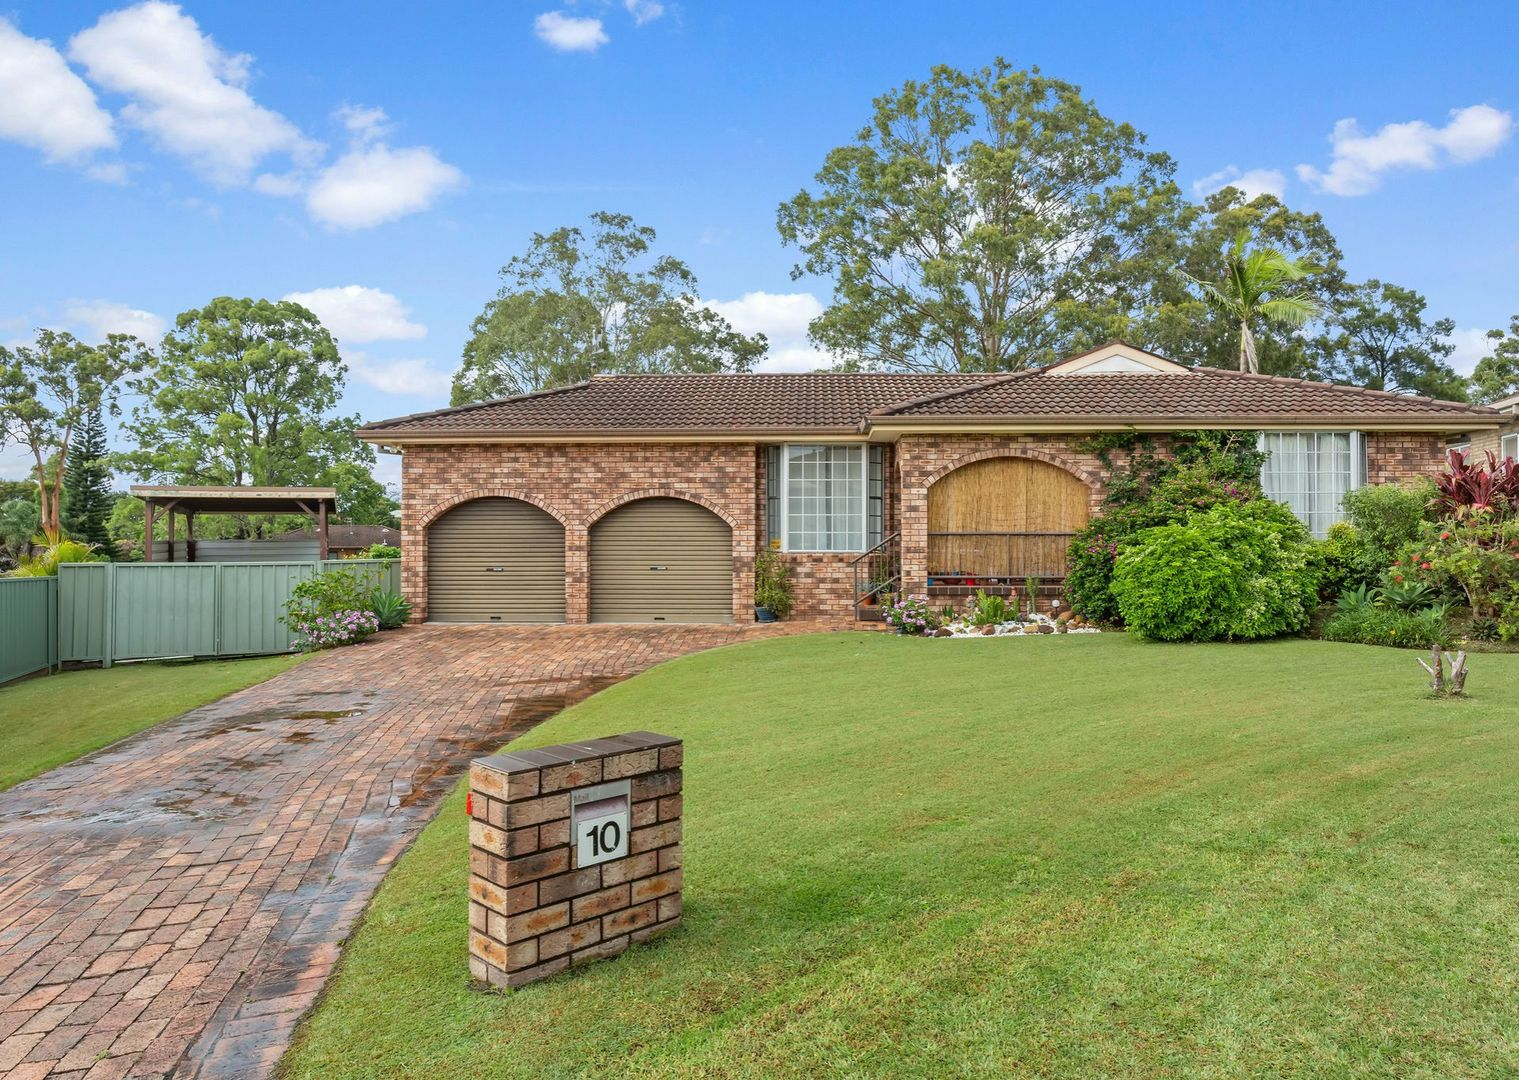 10 Lilac Close, Taree NSW 2430, Image 0